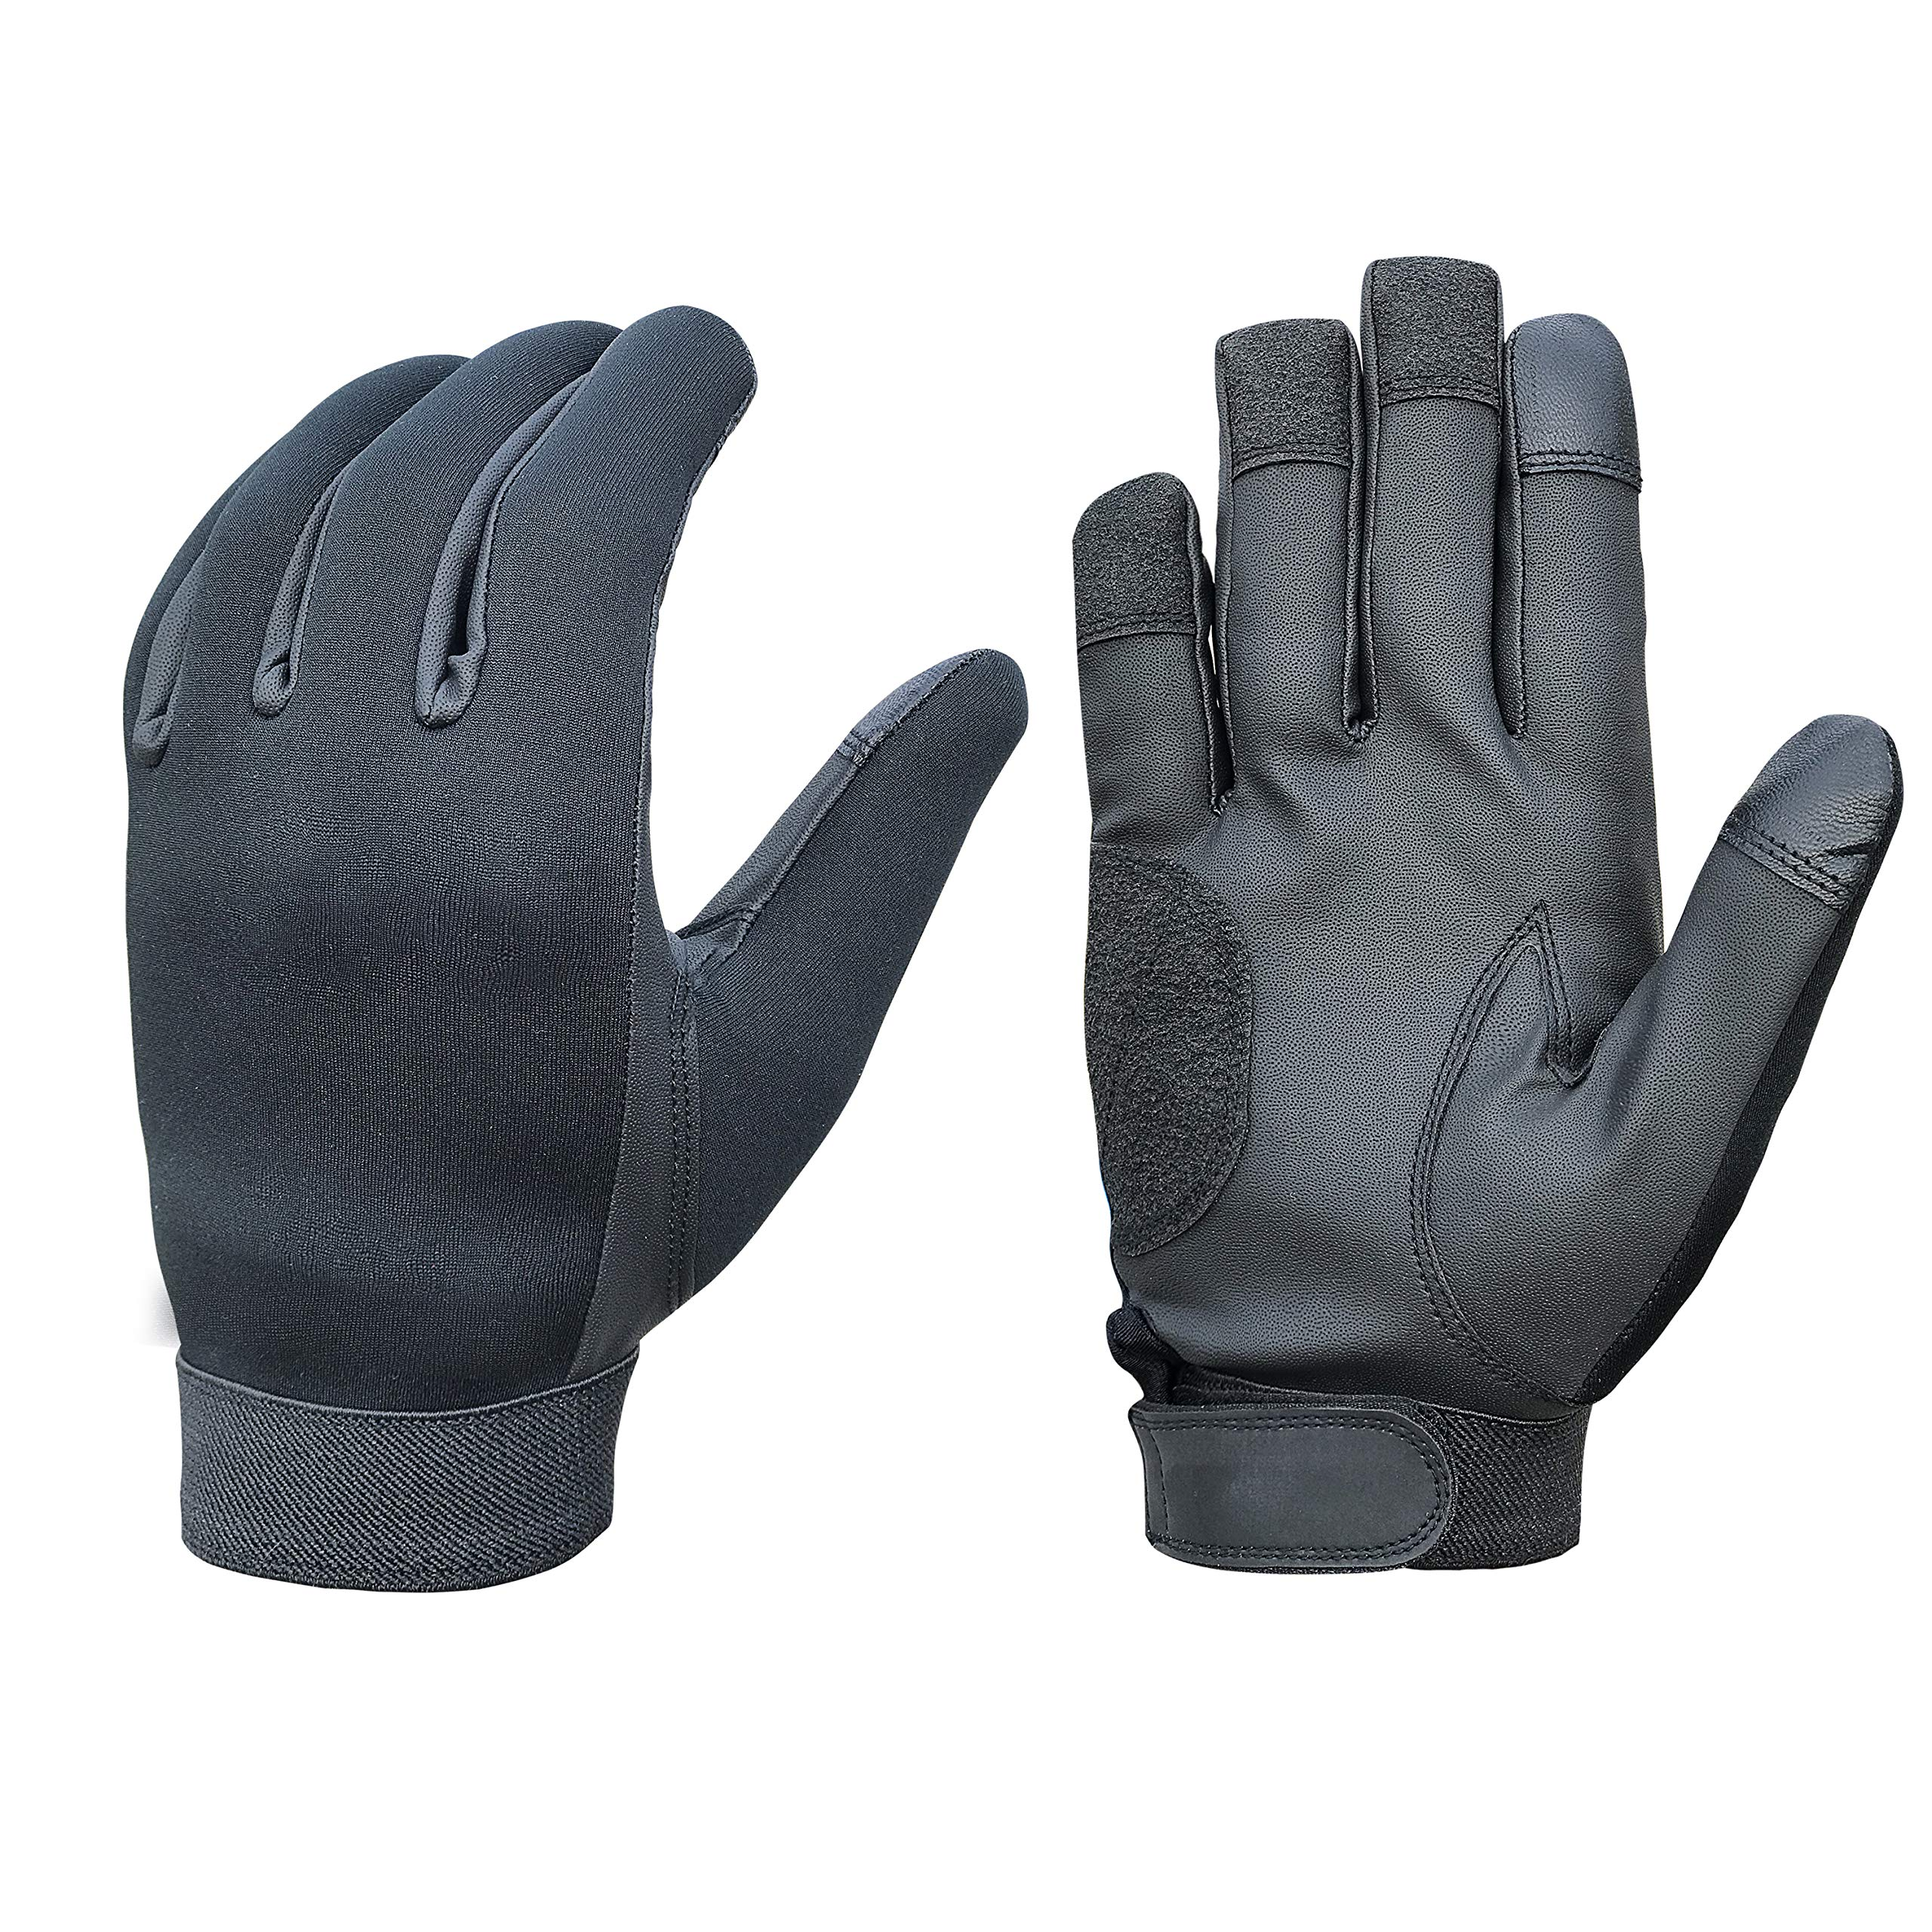 Neoprene Police Search Shooting Tactical gloves (2XL)